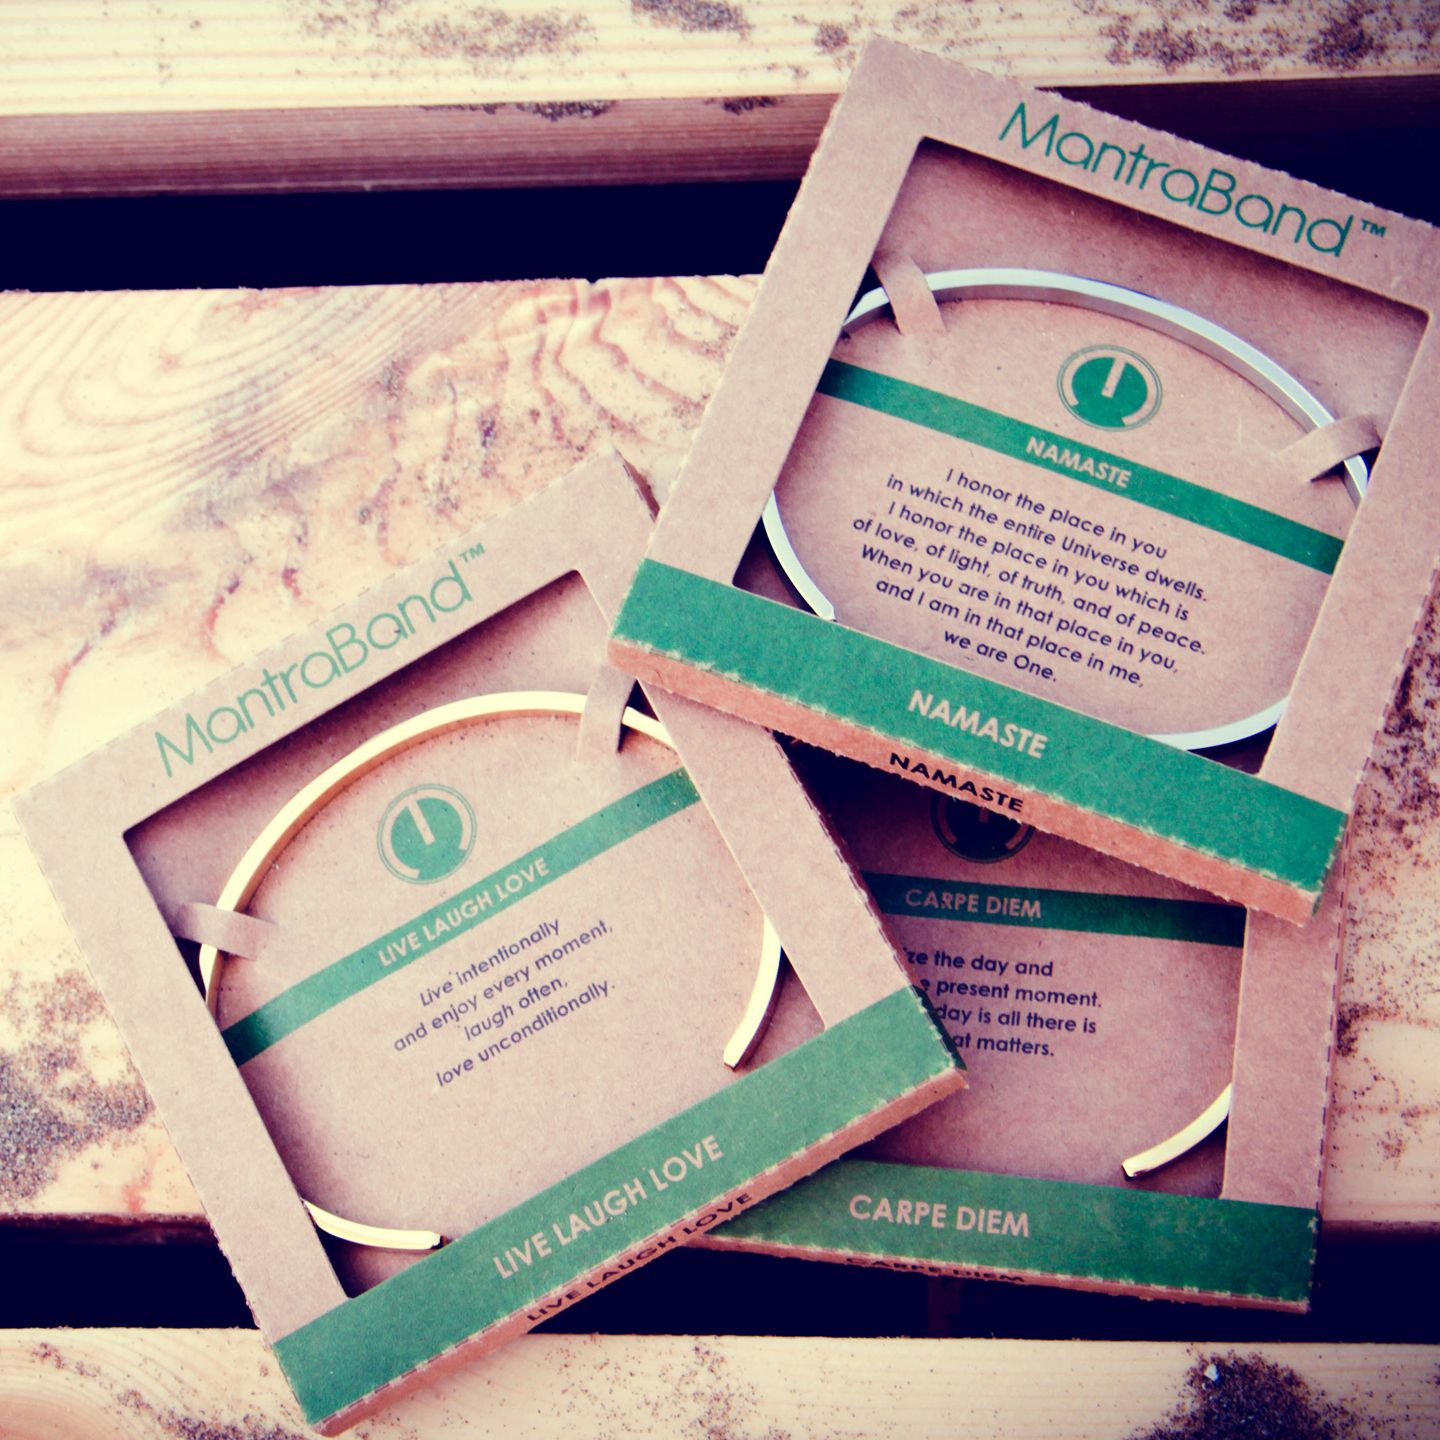 MantraBands make the perfect gift! Free shipping on all orders. Ships next business day. #gifts #jewelry